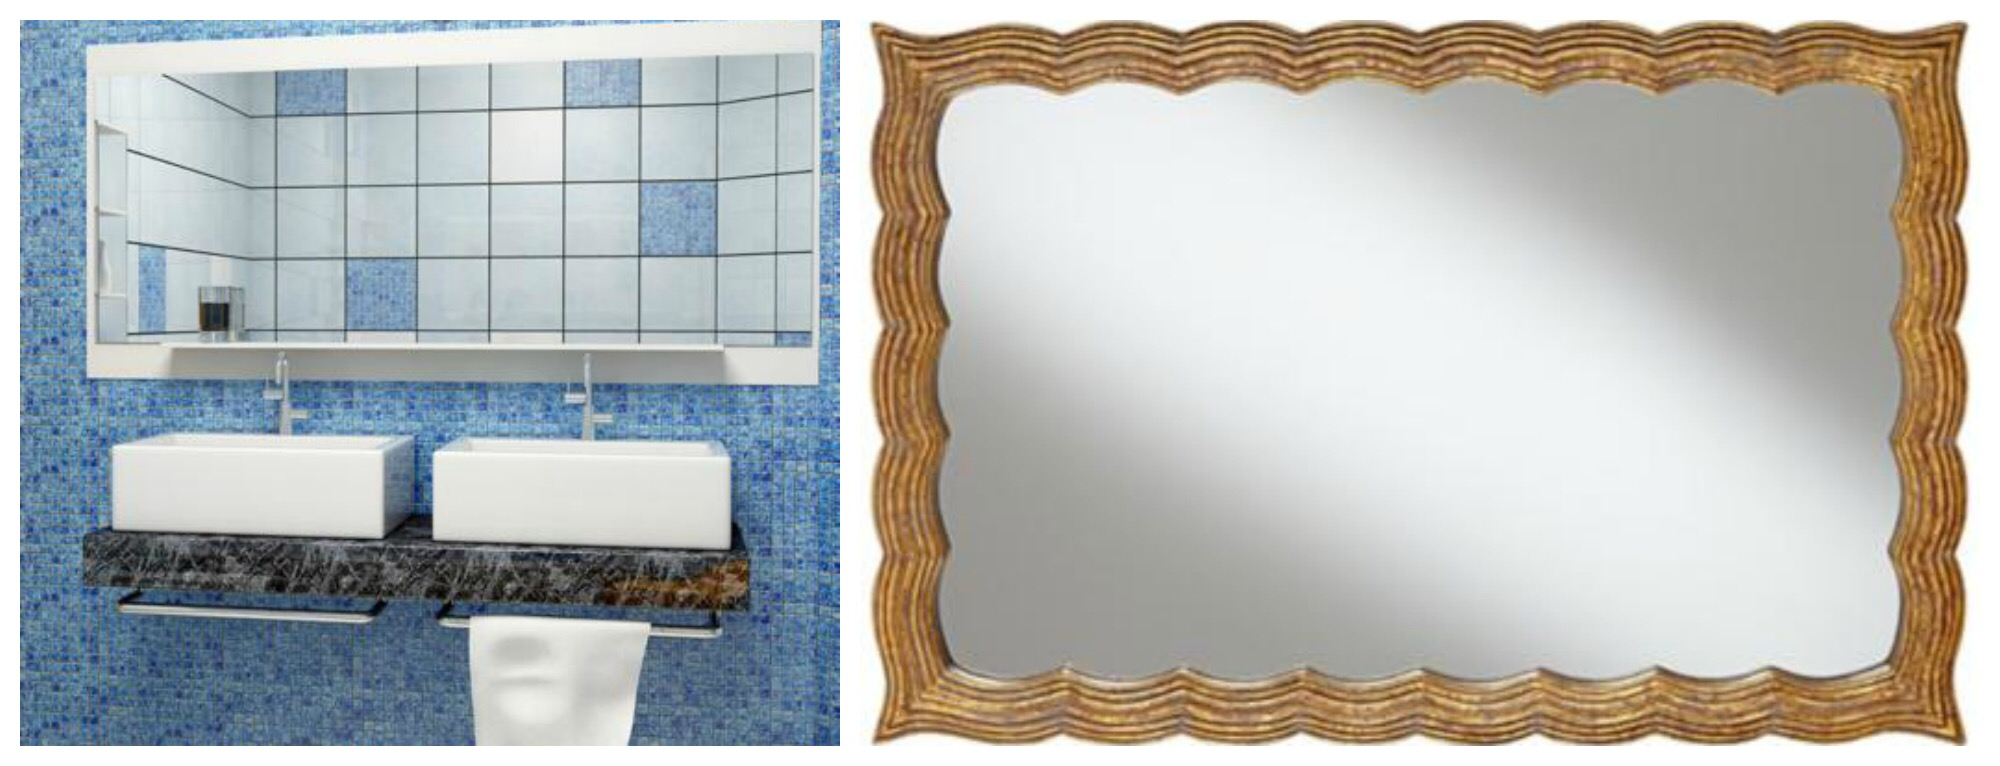 Bathroom mirrors can do more than just be a passive reflection.